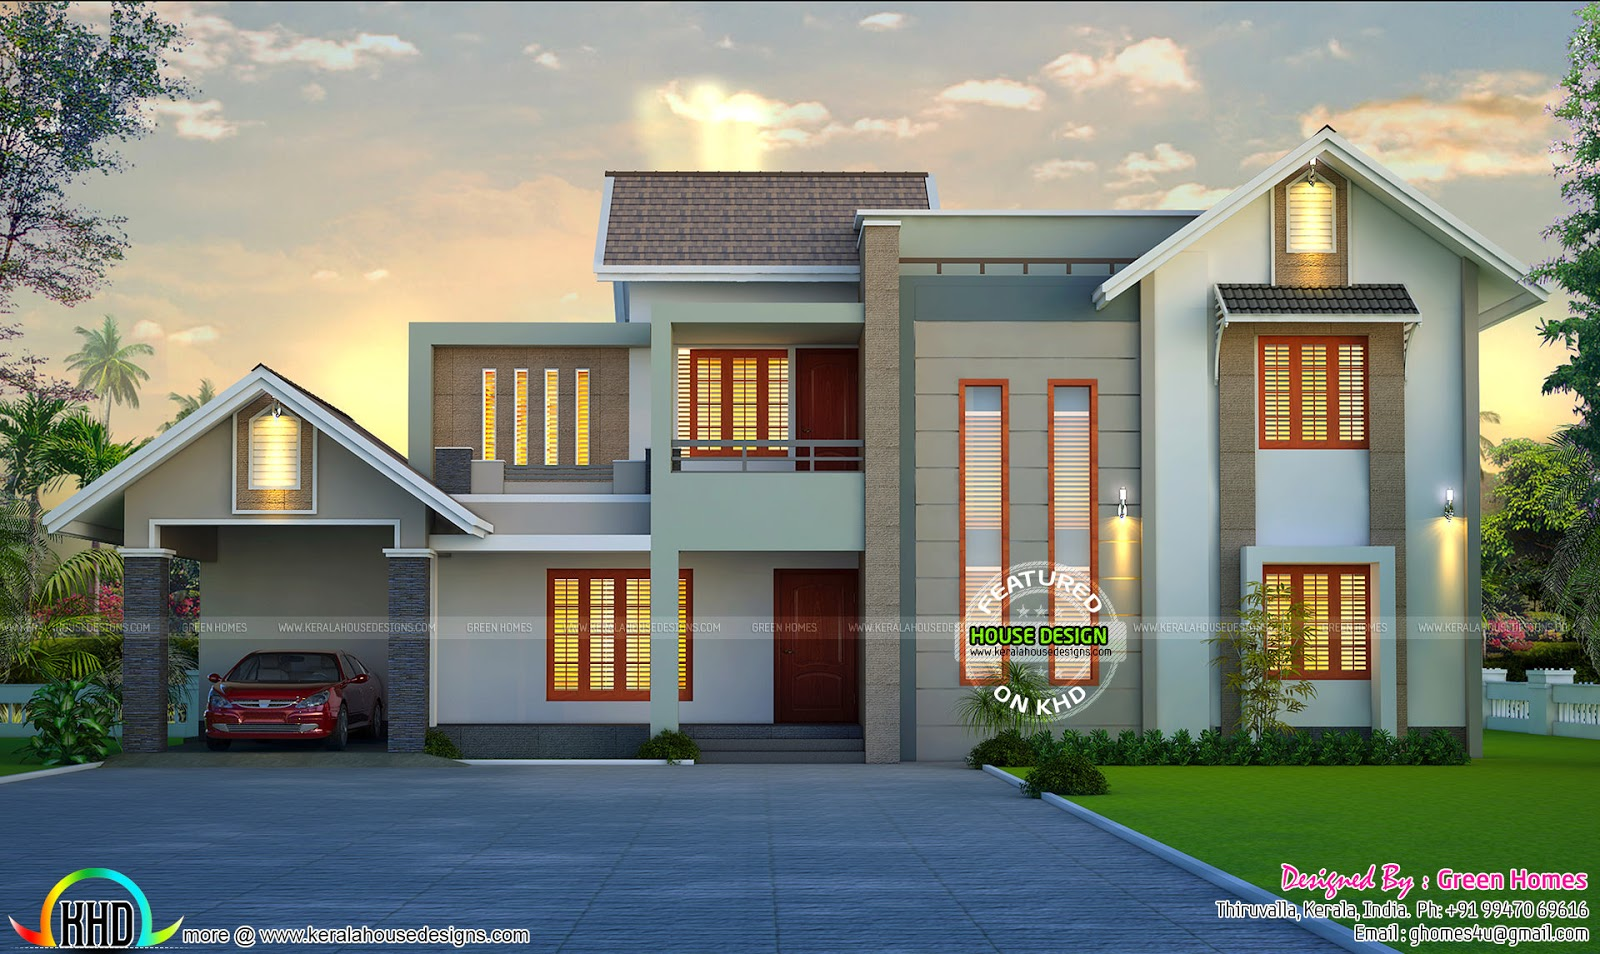 Beautiful home design by green homes thiruvalla kerala for Modern green home plans